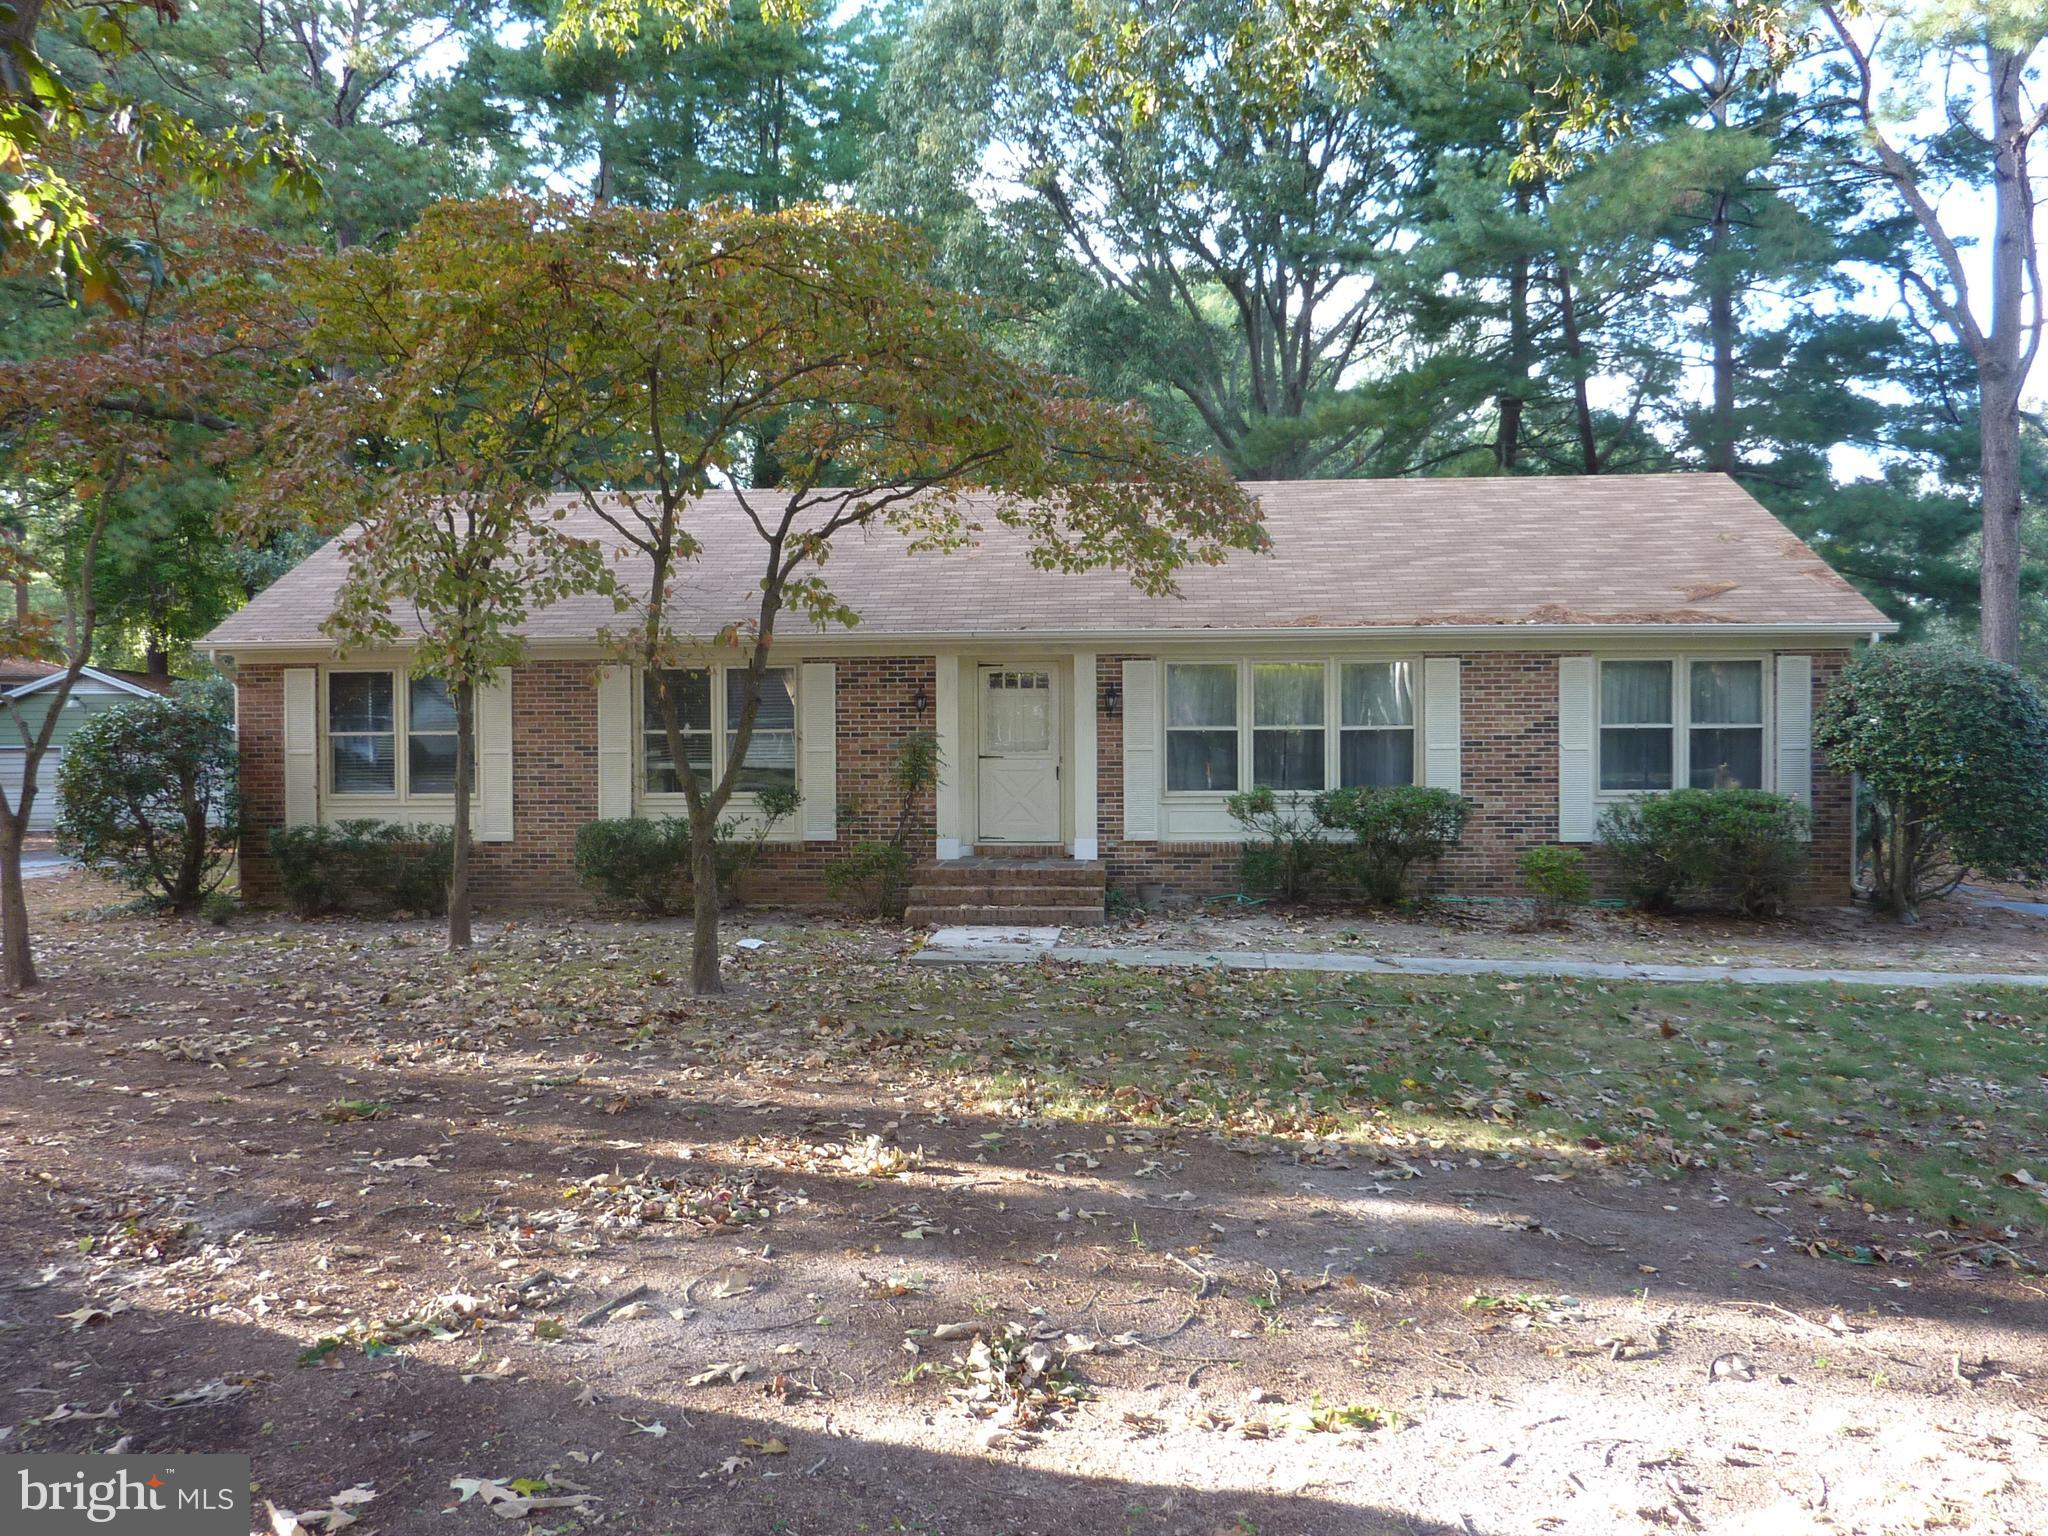 APPLICATION REQUIREMENTS: Excellent rental history, income $5,000+/mo, & Experian FICO 650+.  Sprawling rancher located off Loblolly Lane, near Salisbury University. The entry hall opens to the front living room, separate dining room with built-in corner display cabinets, peninsula kitchen with pantry and full appliances, family room with a brick fireplace, sun room with sliding doors to the back yard, and laundry room with washer/dryer hook-ups and storage cabinets. All three bedrooms have ceiling fans and carpeting, and the master bedroom has two closets and a full bathroom. Appliances include refrigerator, electric range, range-hood microwave, and dishwasher. Features include oil heat and central air conditioning, a paved driveway, and ceiling fans throughout. Tenant is responsible for lawn care and utilities (electric, oil heat, water/sewer/trash). Ready for move-in.